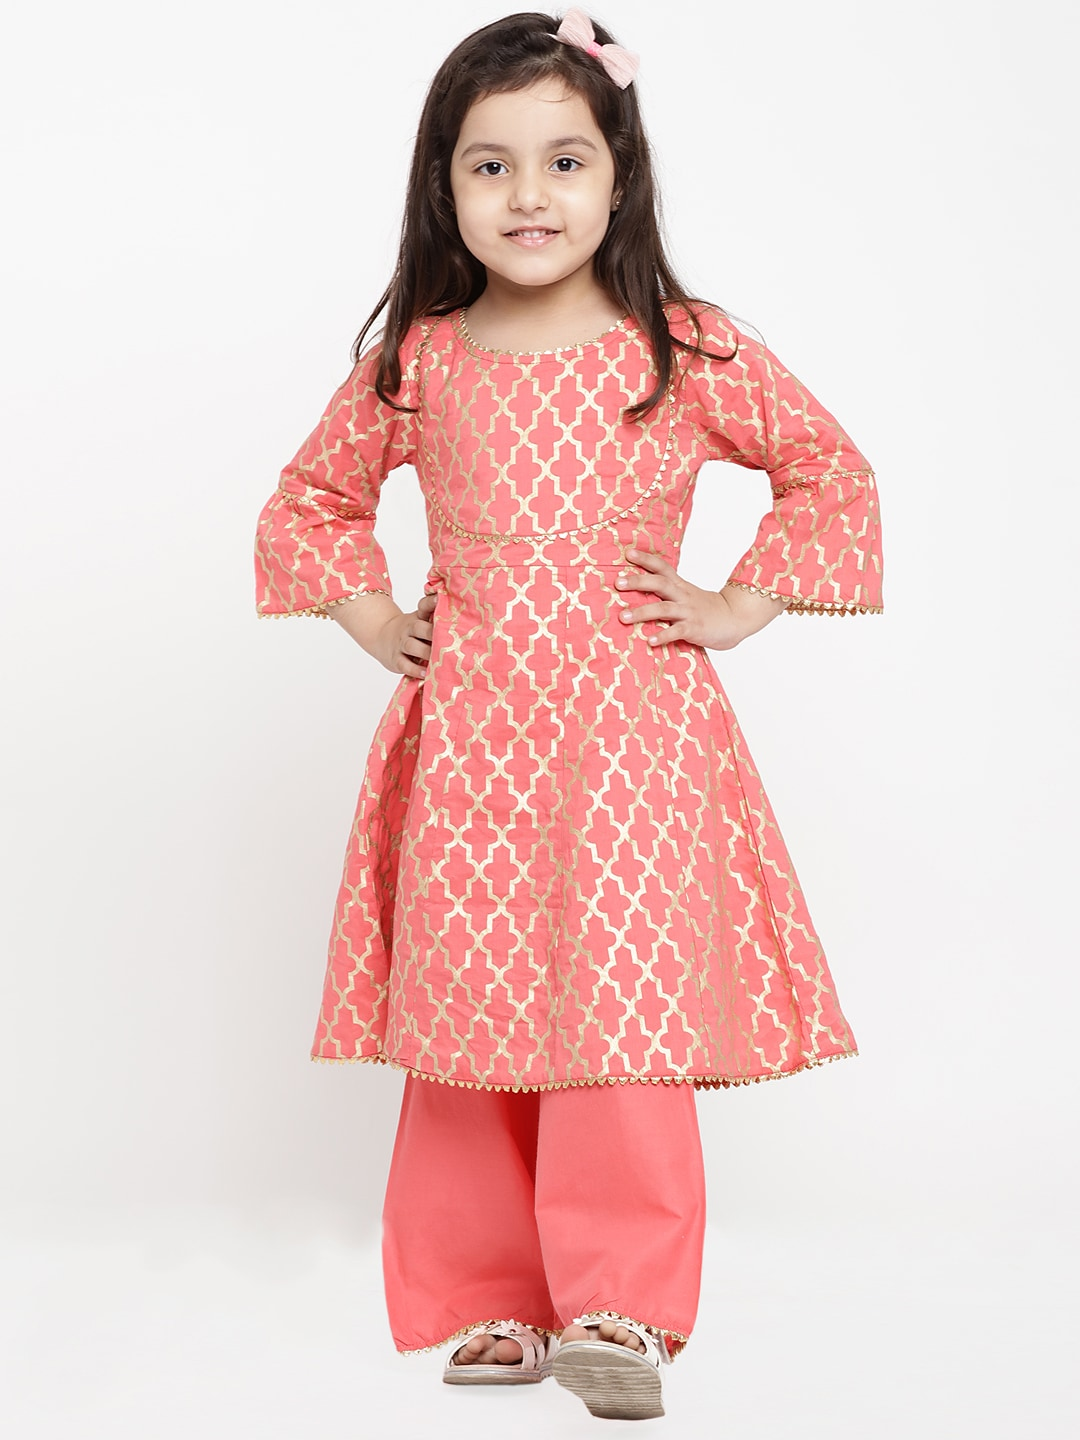 54a6b9580 Kids Dresses - Buy Kids Clothing Online in India